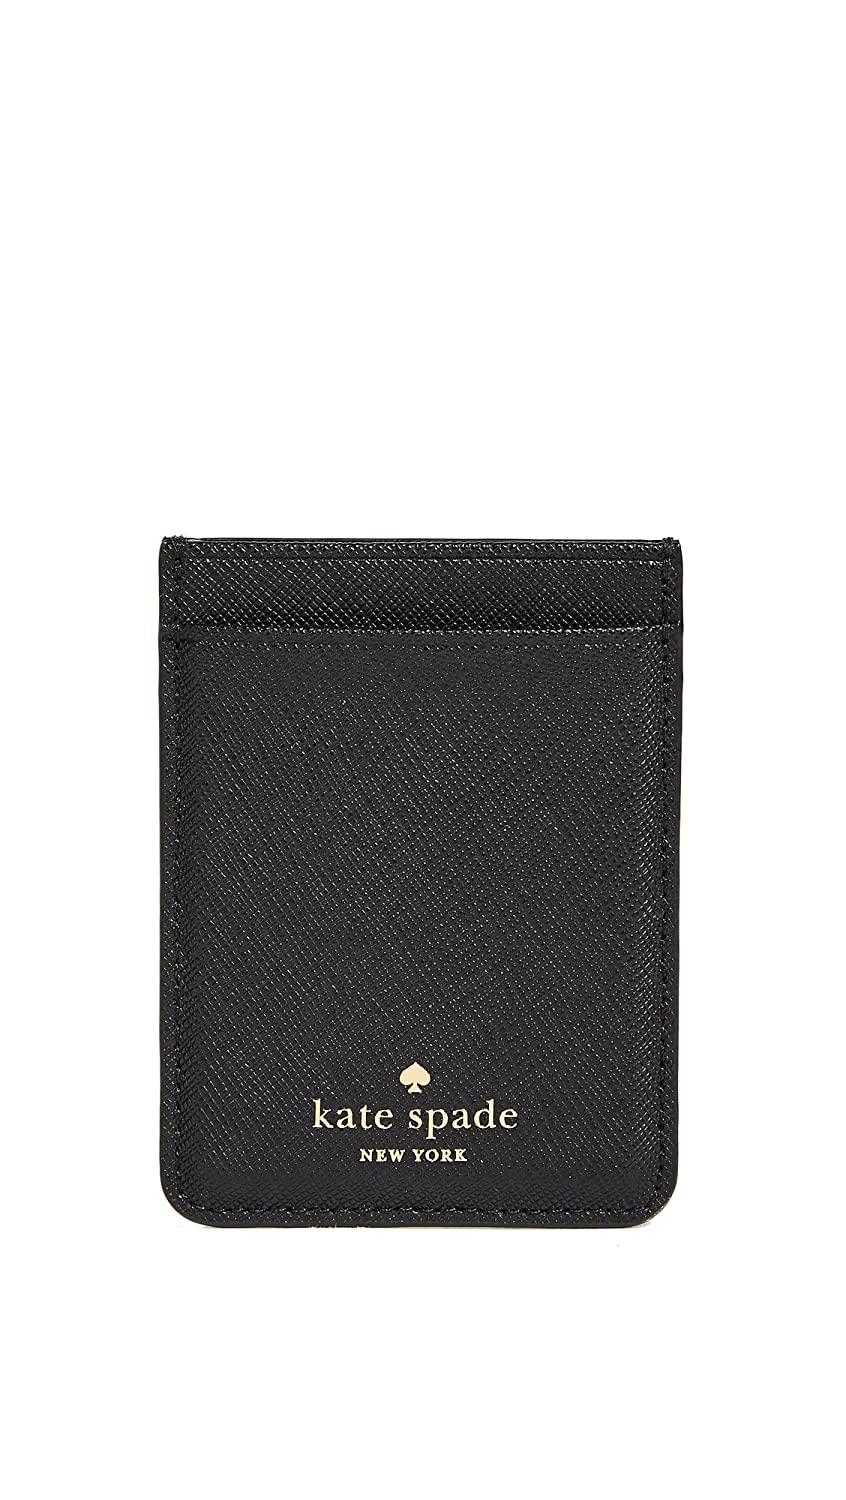 check out 766b1 52a98 Kate Spade New York Double Sticker Phone Pocket, Black, One Size